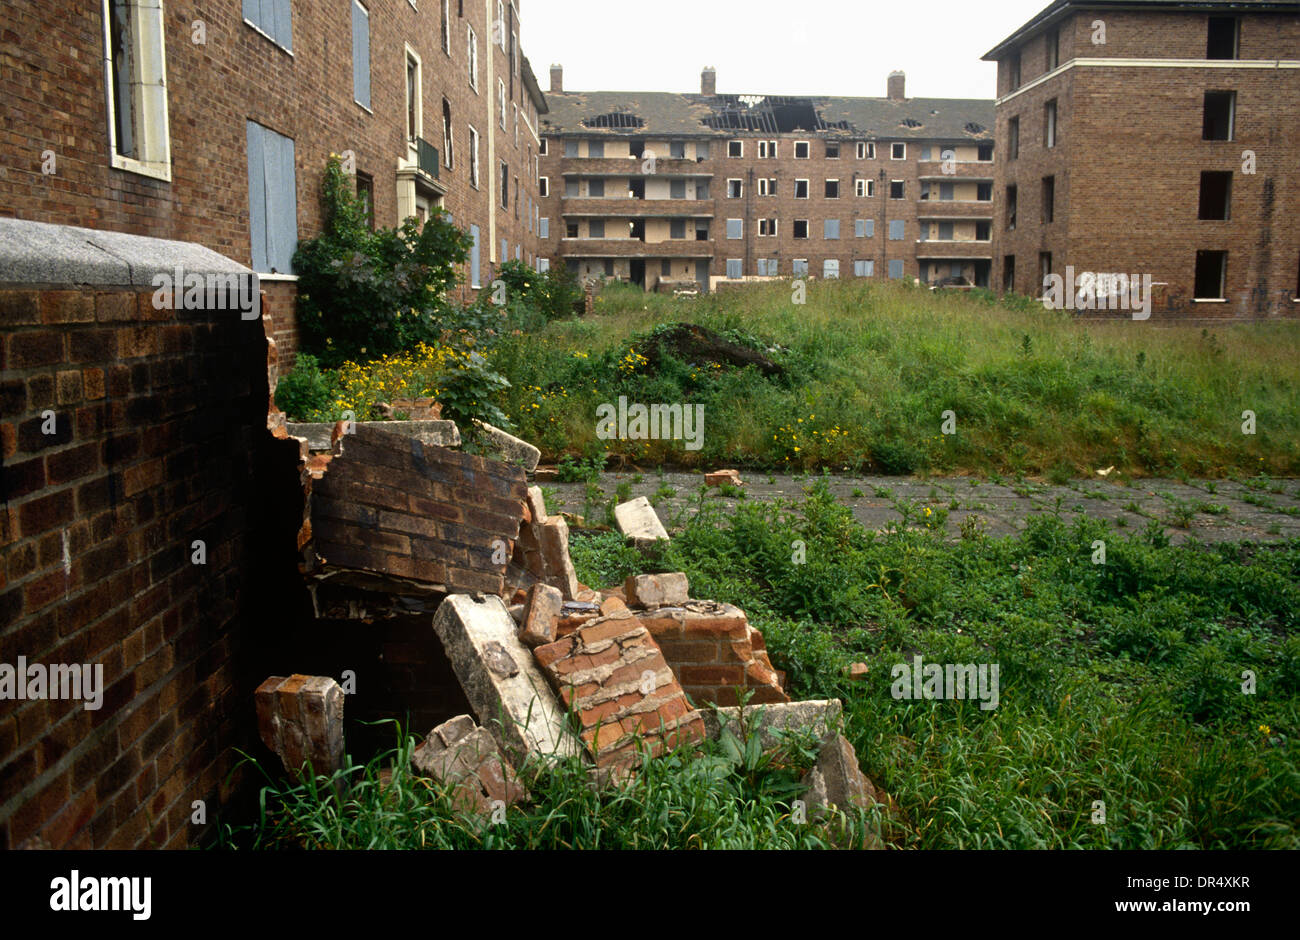 A Low Wide Landscape Of Dereliction And Poverty On A